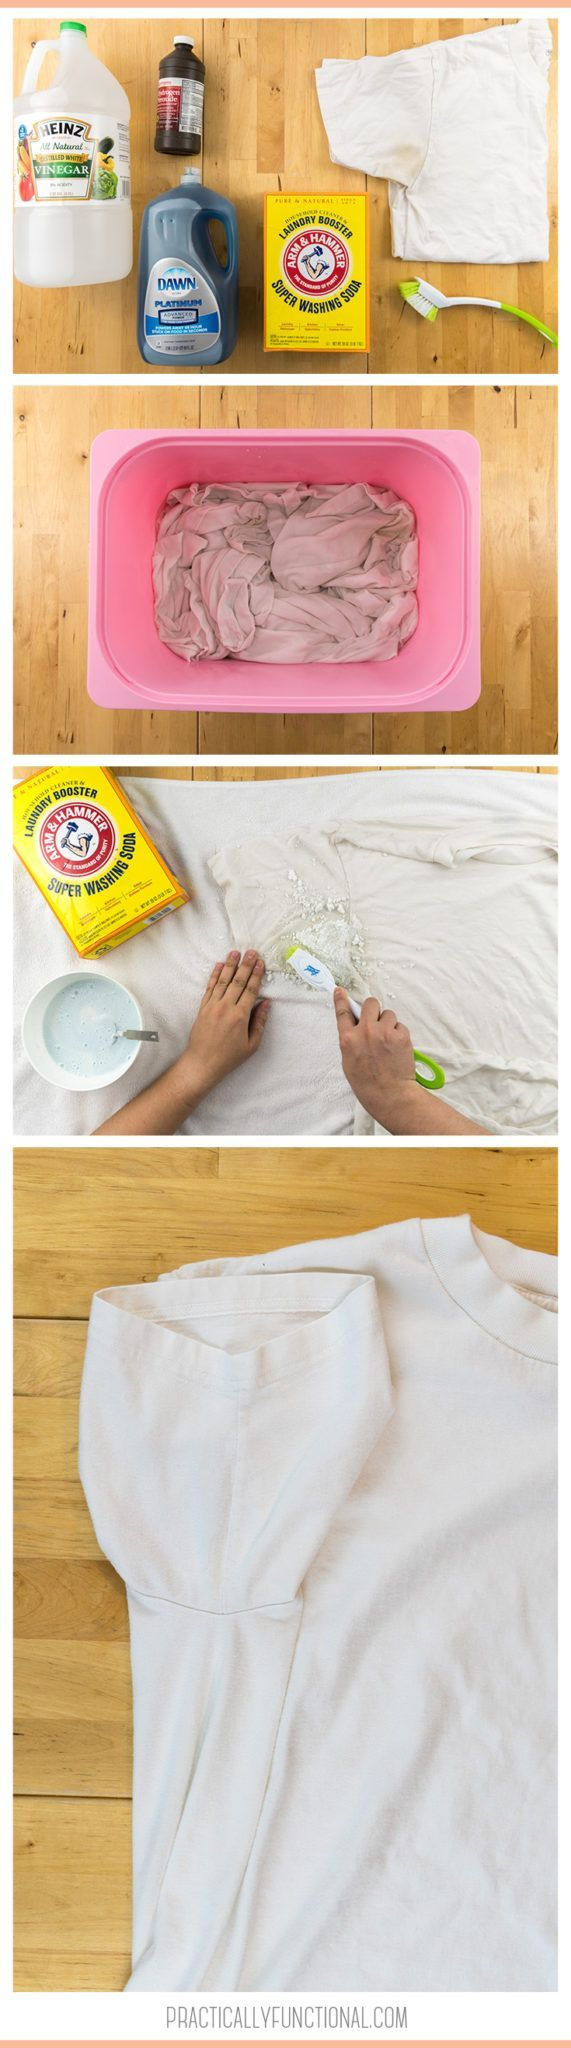 Have you ever wondered how to remove yellow sweat stains from your shirts? Here is a quick and easy way to get rid of those ugly stains plus a genius tip on how to keep them away for good! #laundry #laundrytips #cleaningtips #cleaninghack